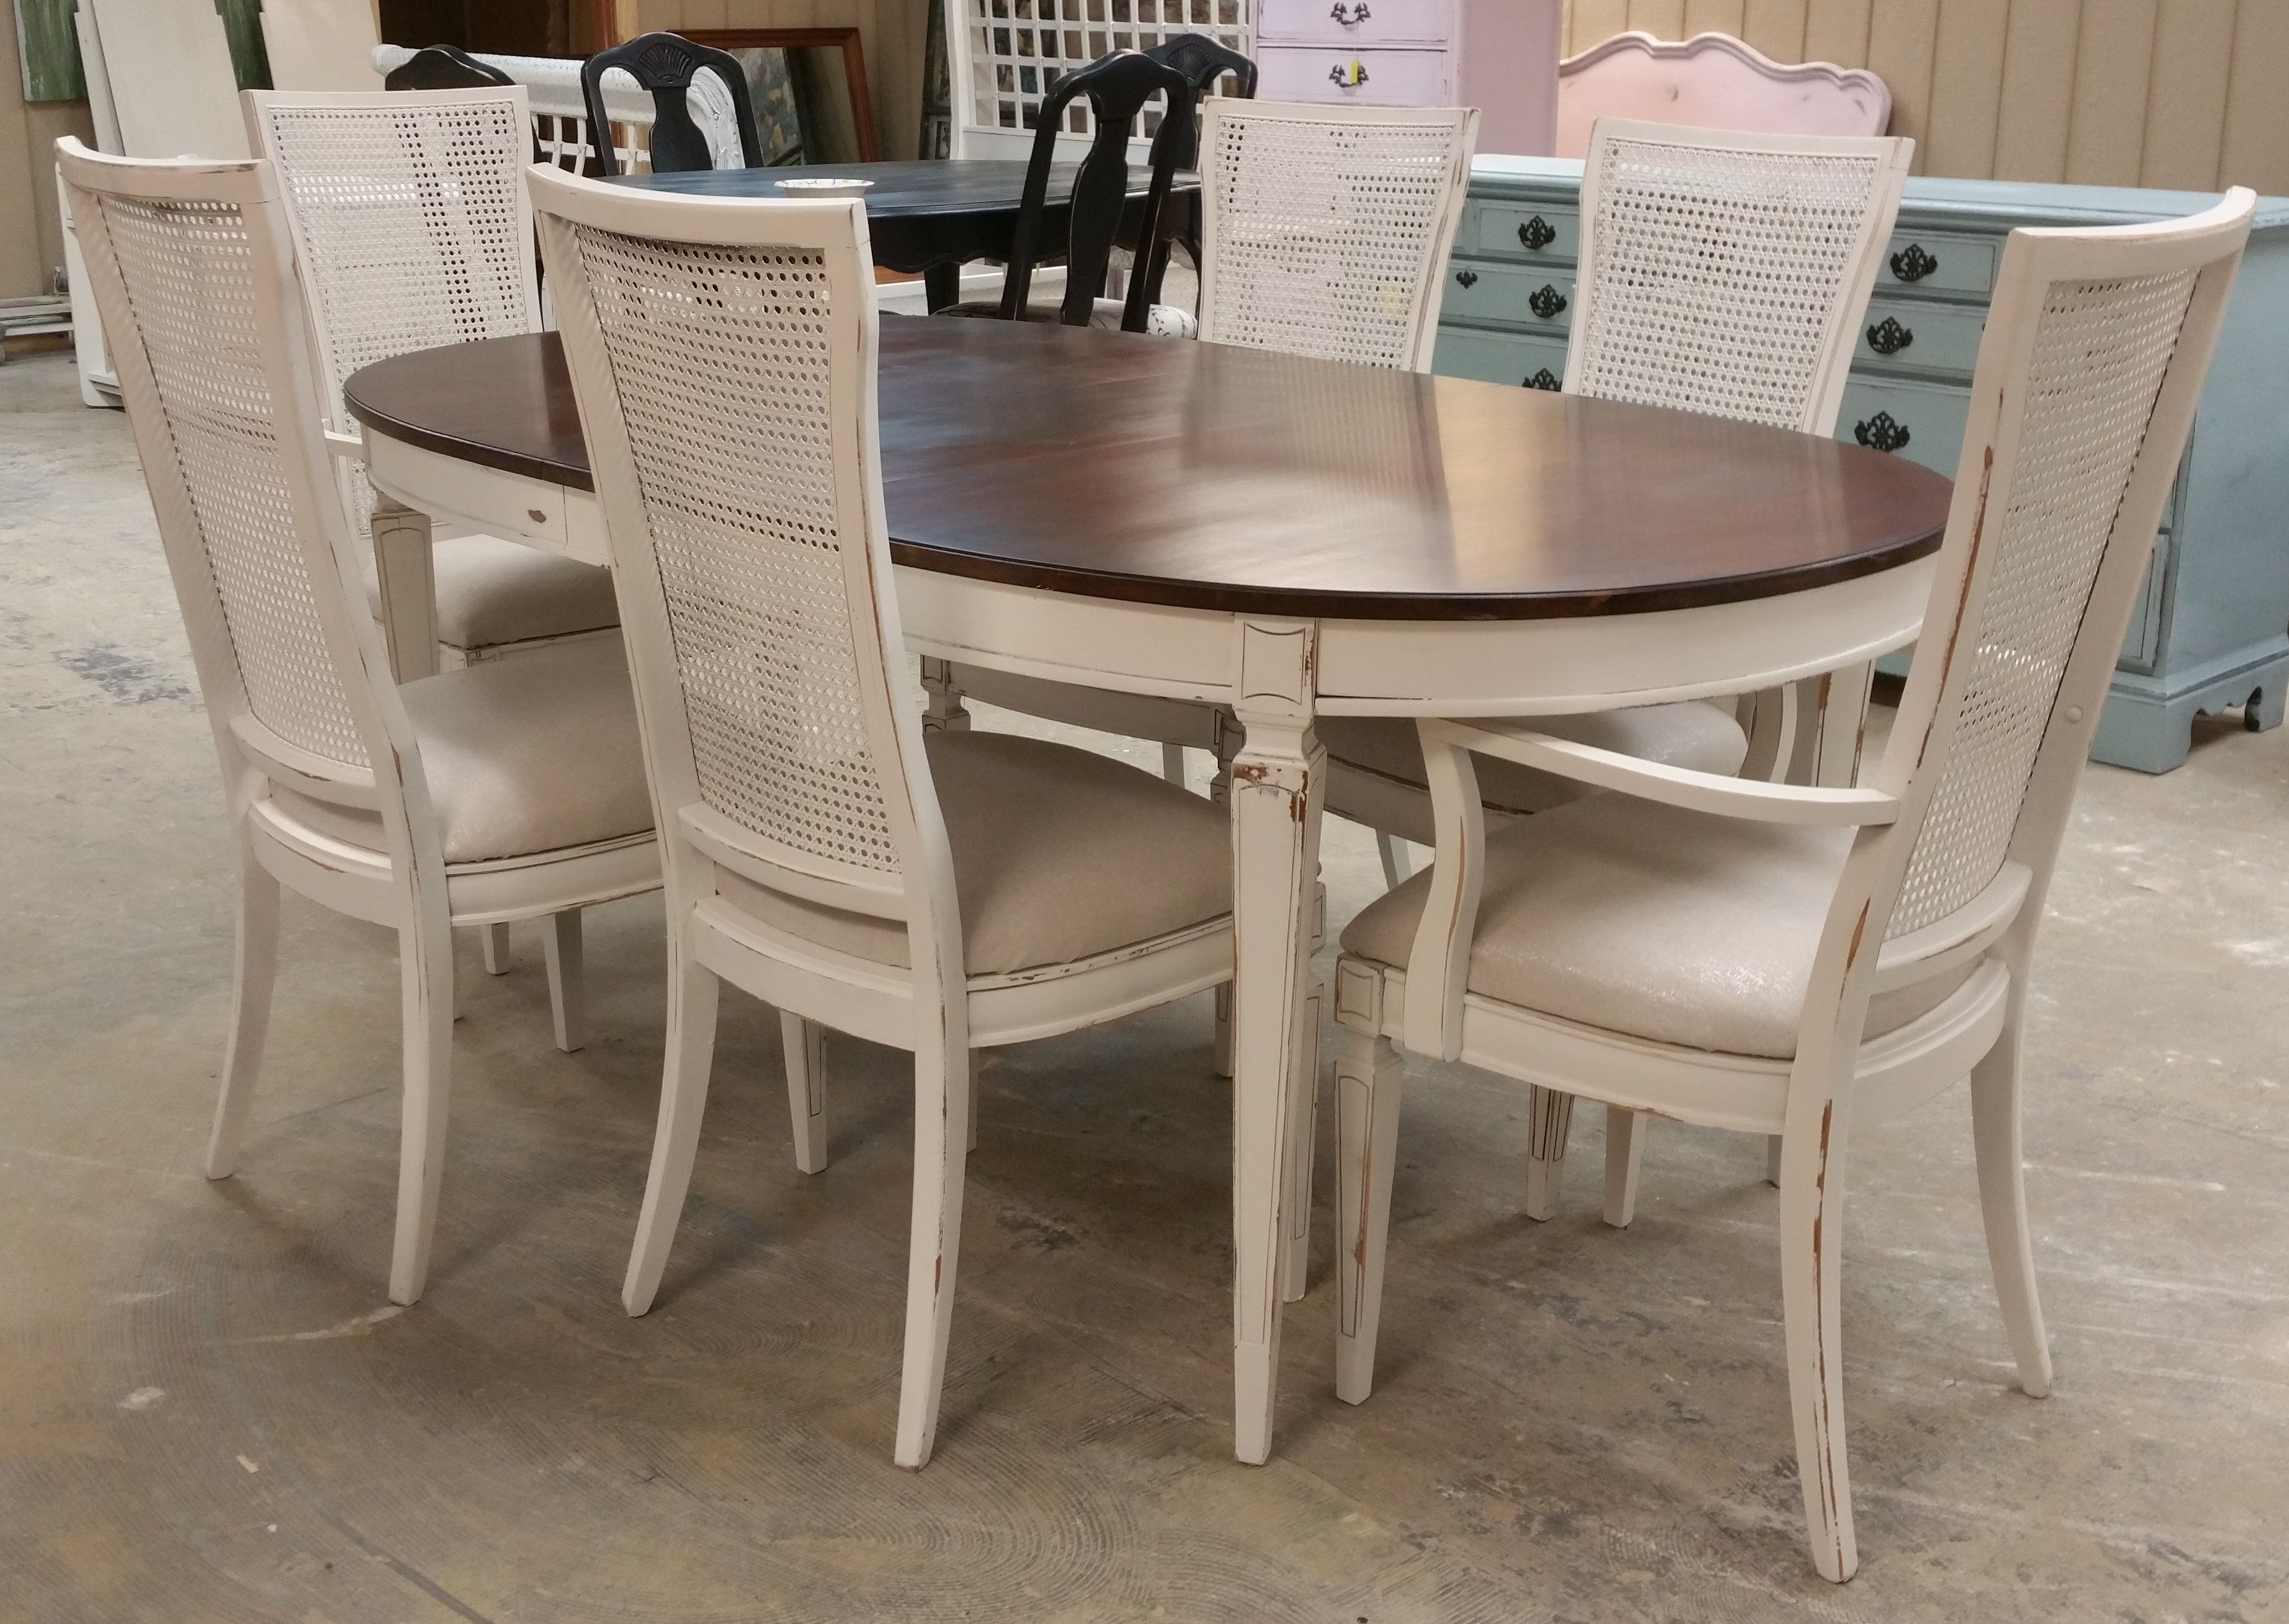 Check Out This Elegant Looking Table And 6 Chairs It S Perfect For Your Thanksgiving Di With Images French Country Furniture French Furniture Shabby Chic Dining